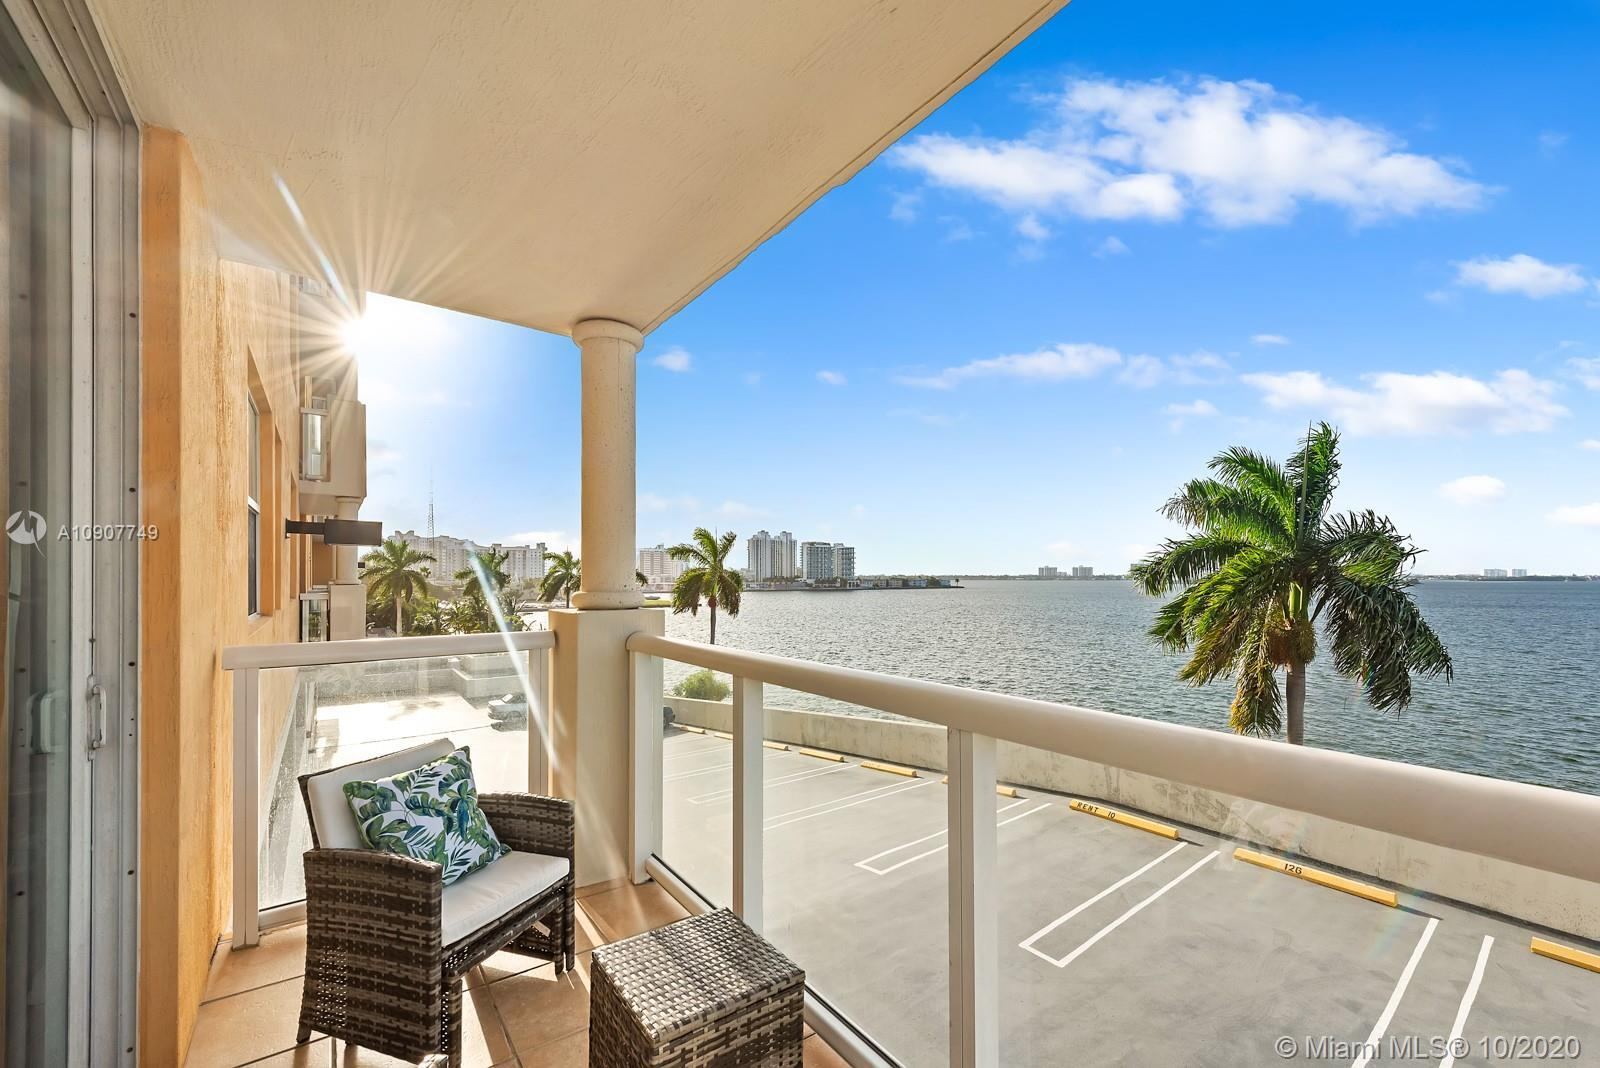 Amazing North views of Biscayne Bay from all windows and terrace. This 2 Bedrooms/2 Full Baths condo